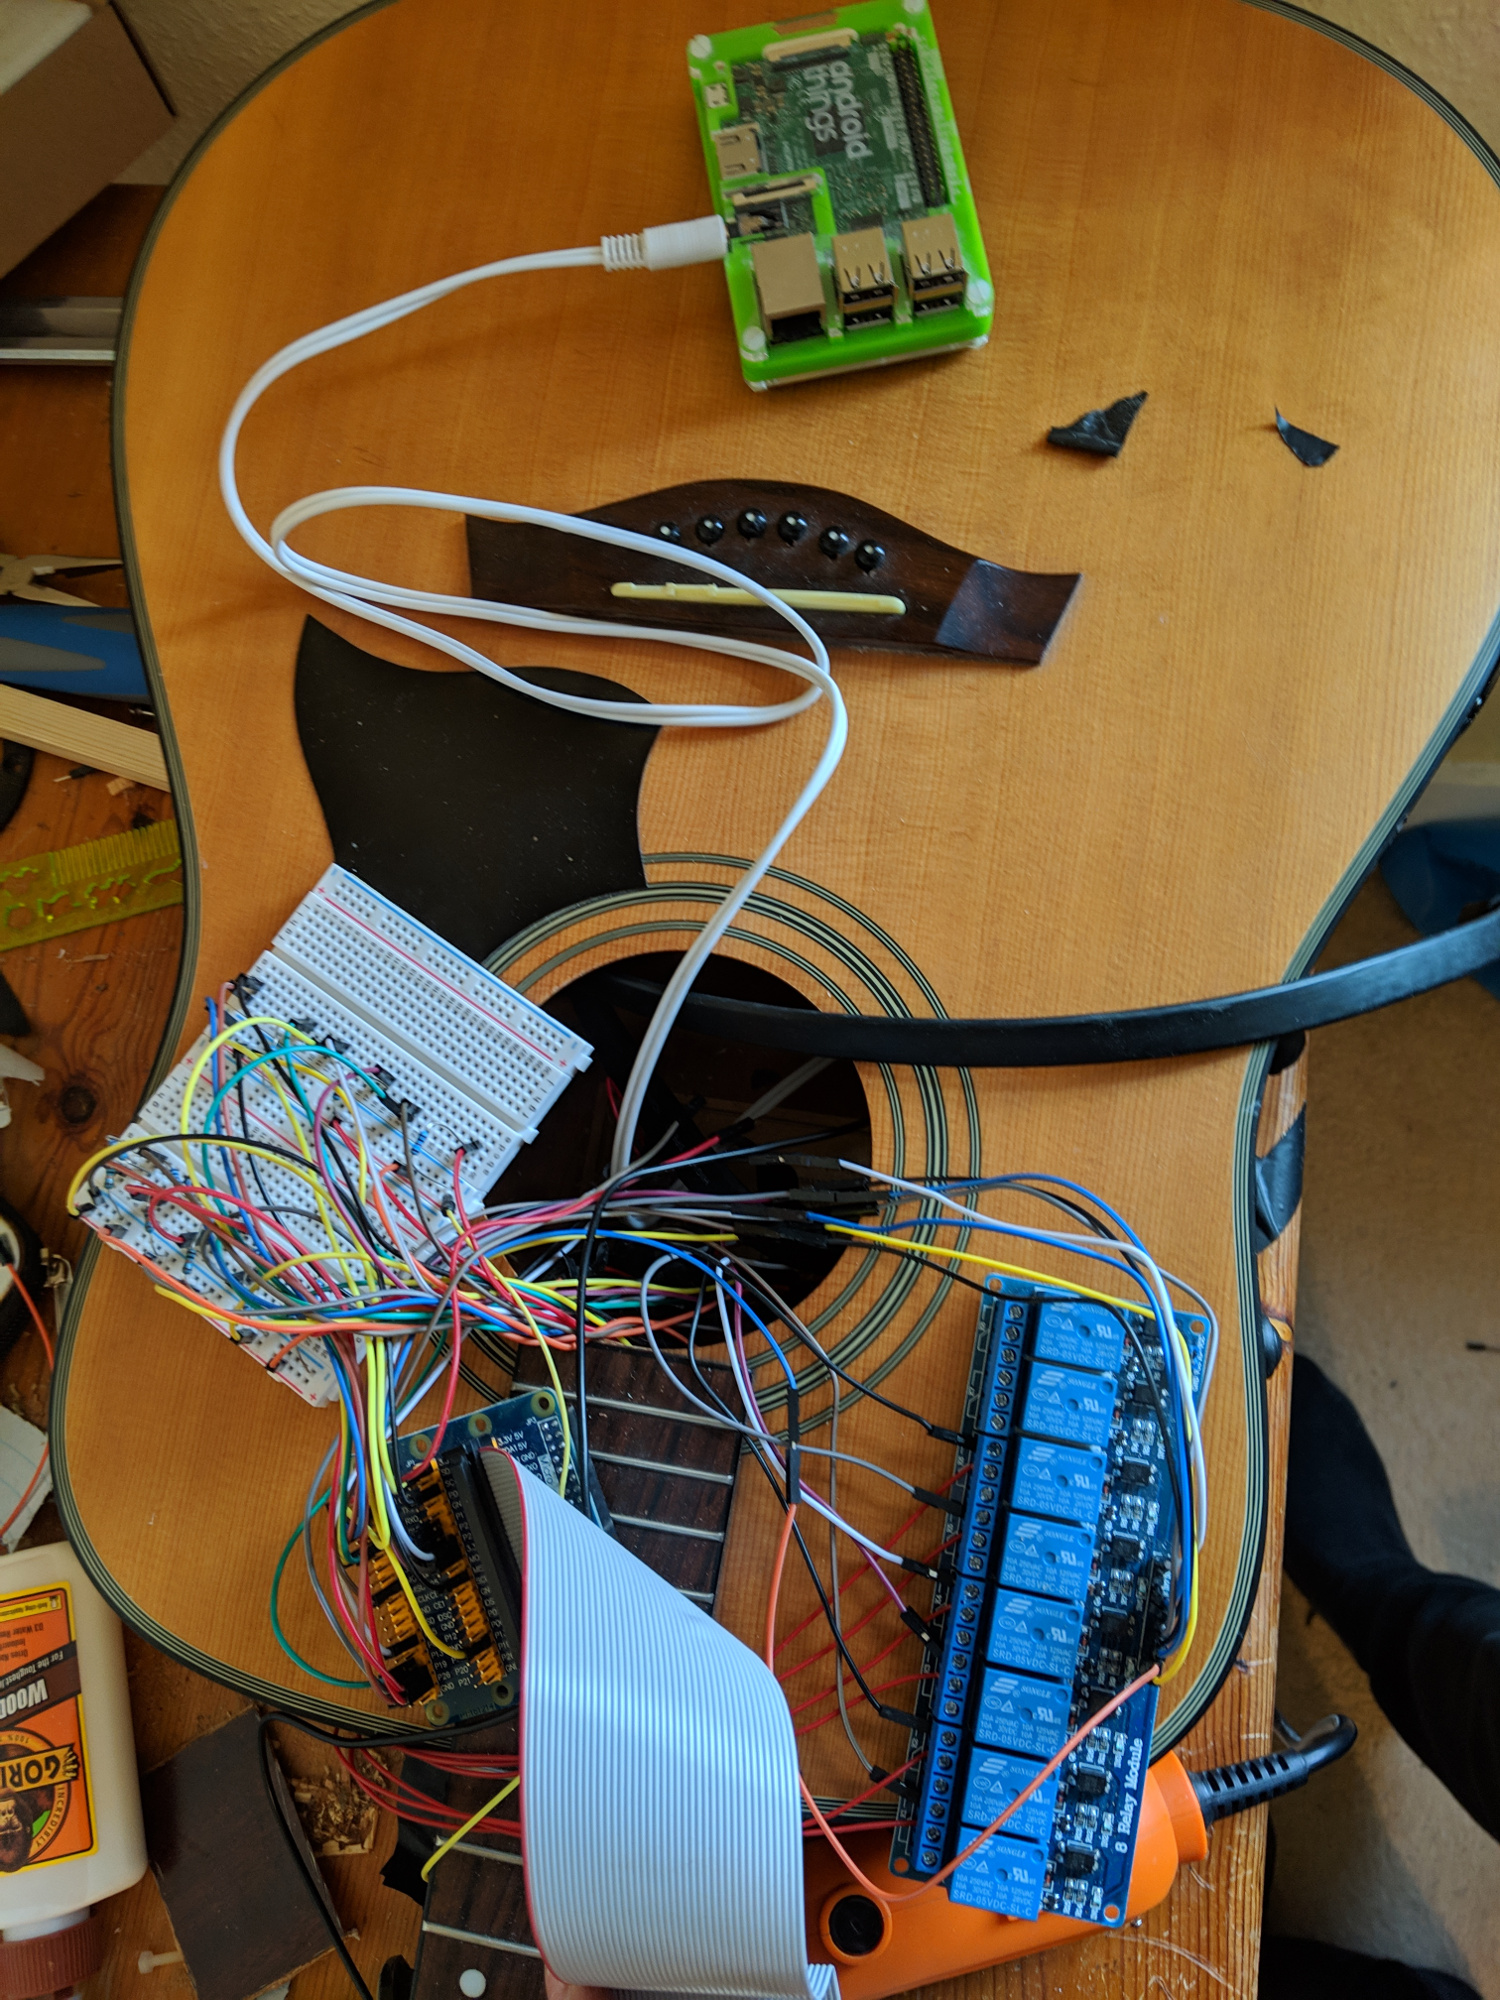 The Pi and other components, including an eight-channel relay for the solenoids in the Braille reader, are stuffed inside the body of the guitar